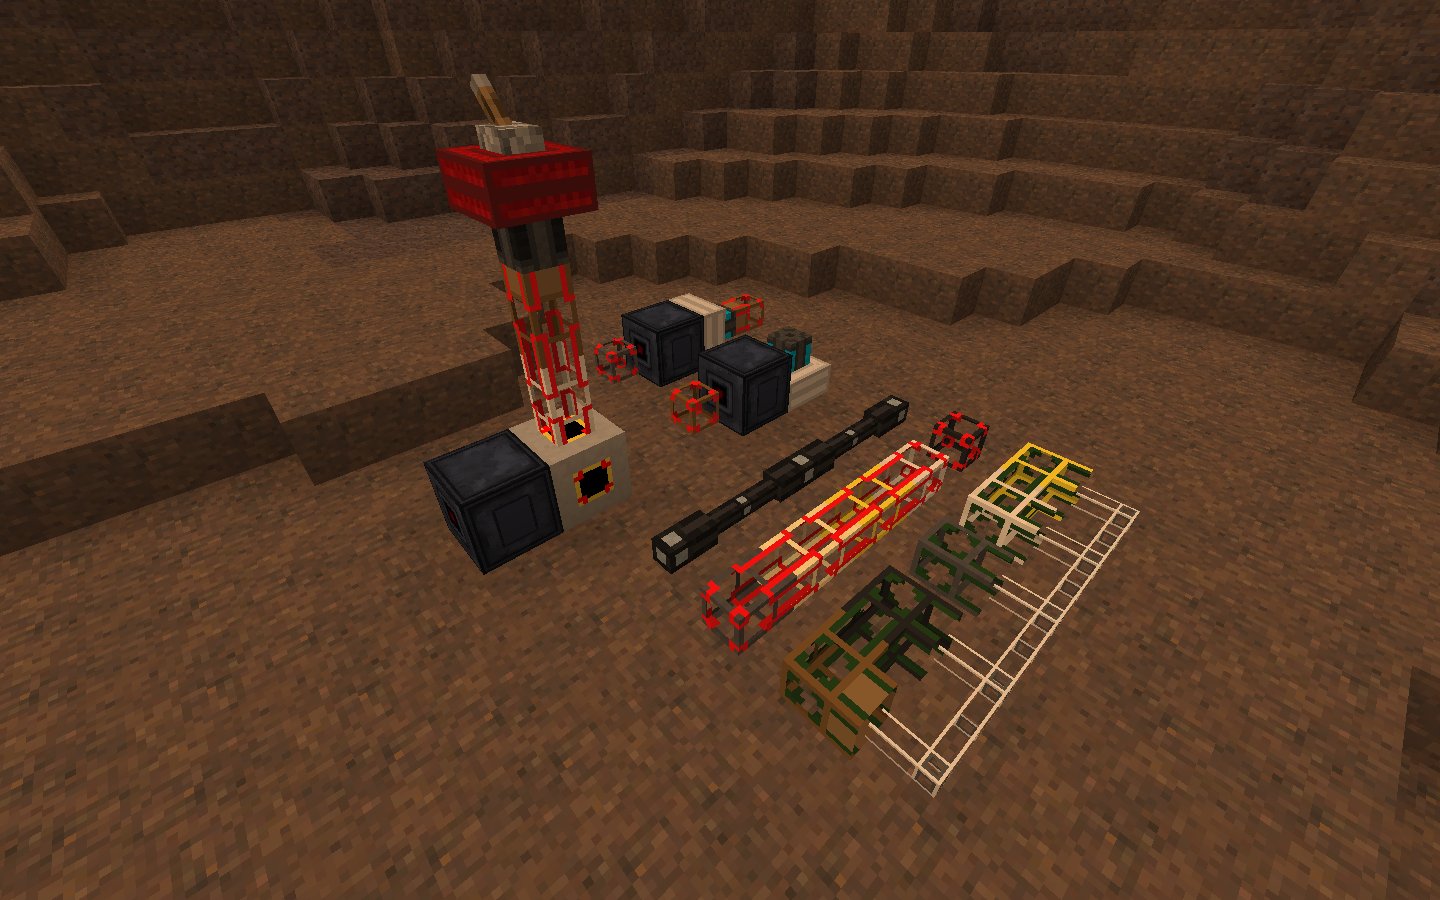 Galacticraft's electrical system is not yet compatible with